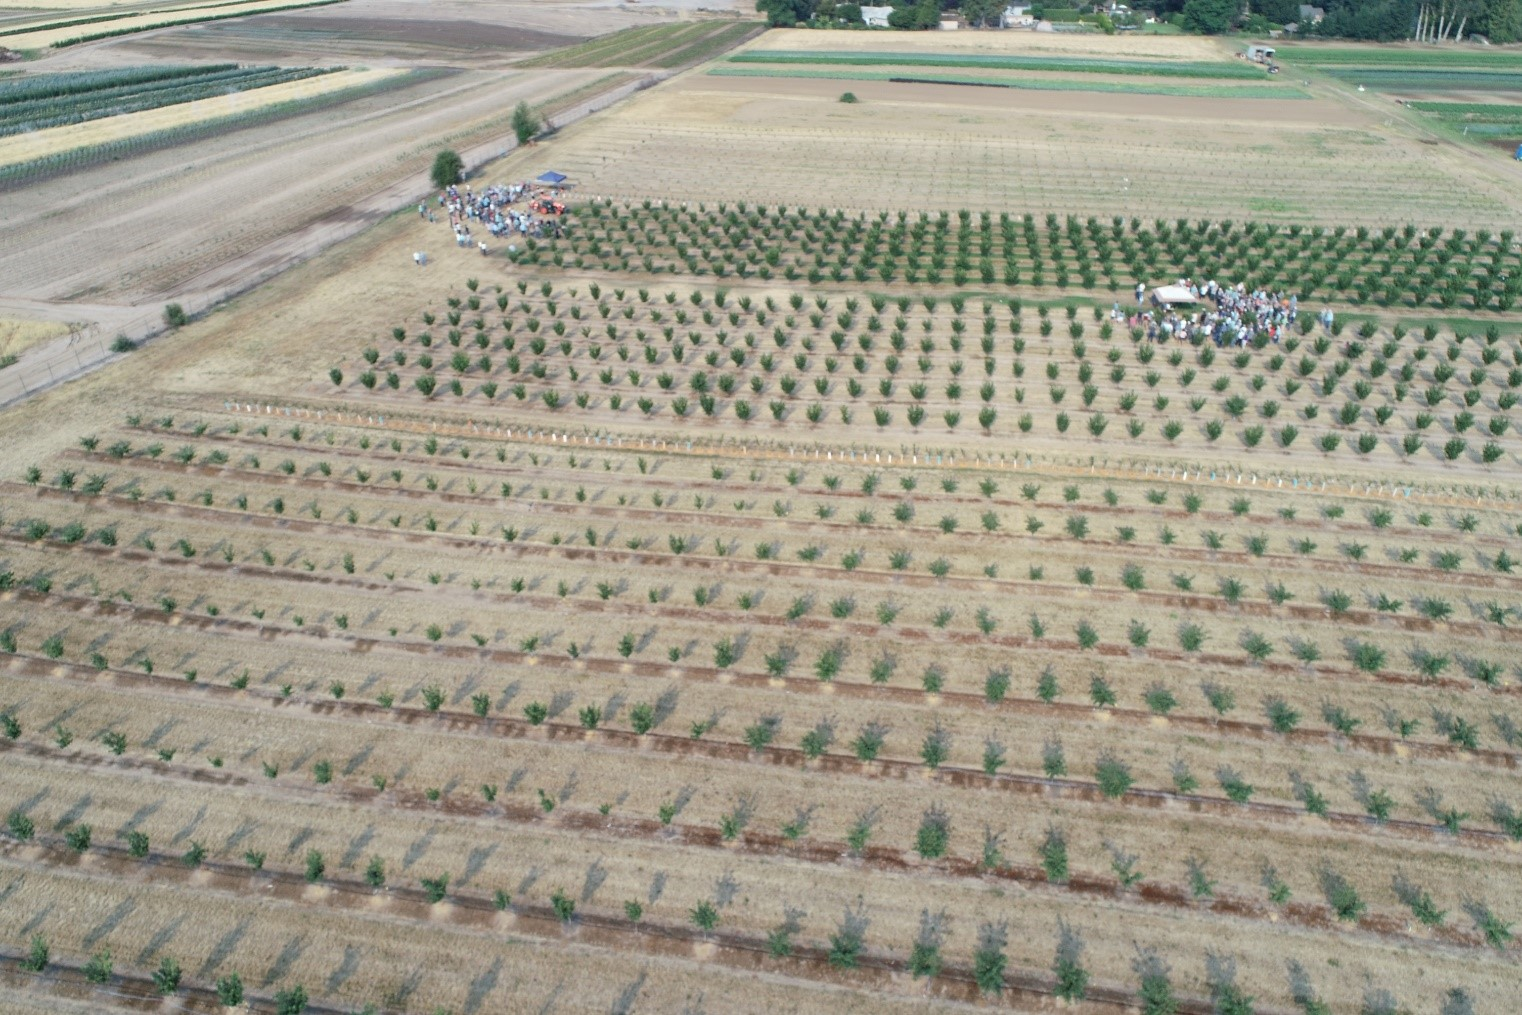 Figure 1. An aerial view of your farm operation can be an attractive addition to advertisements.